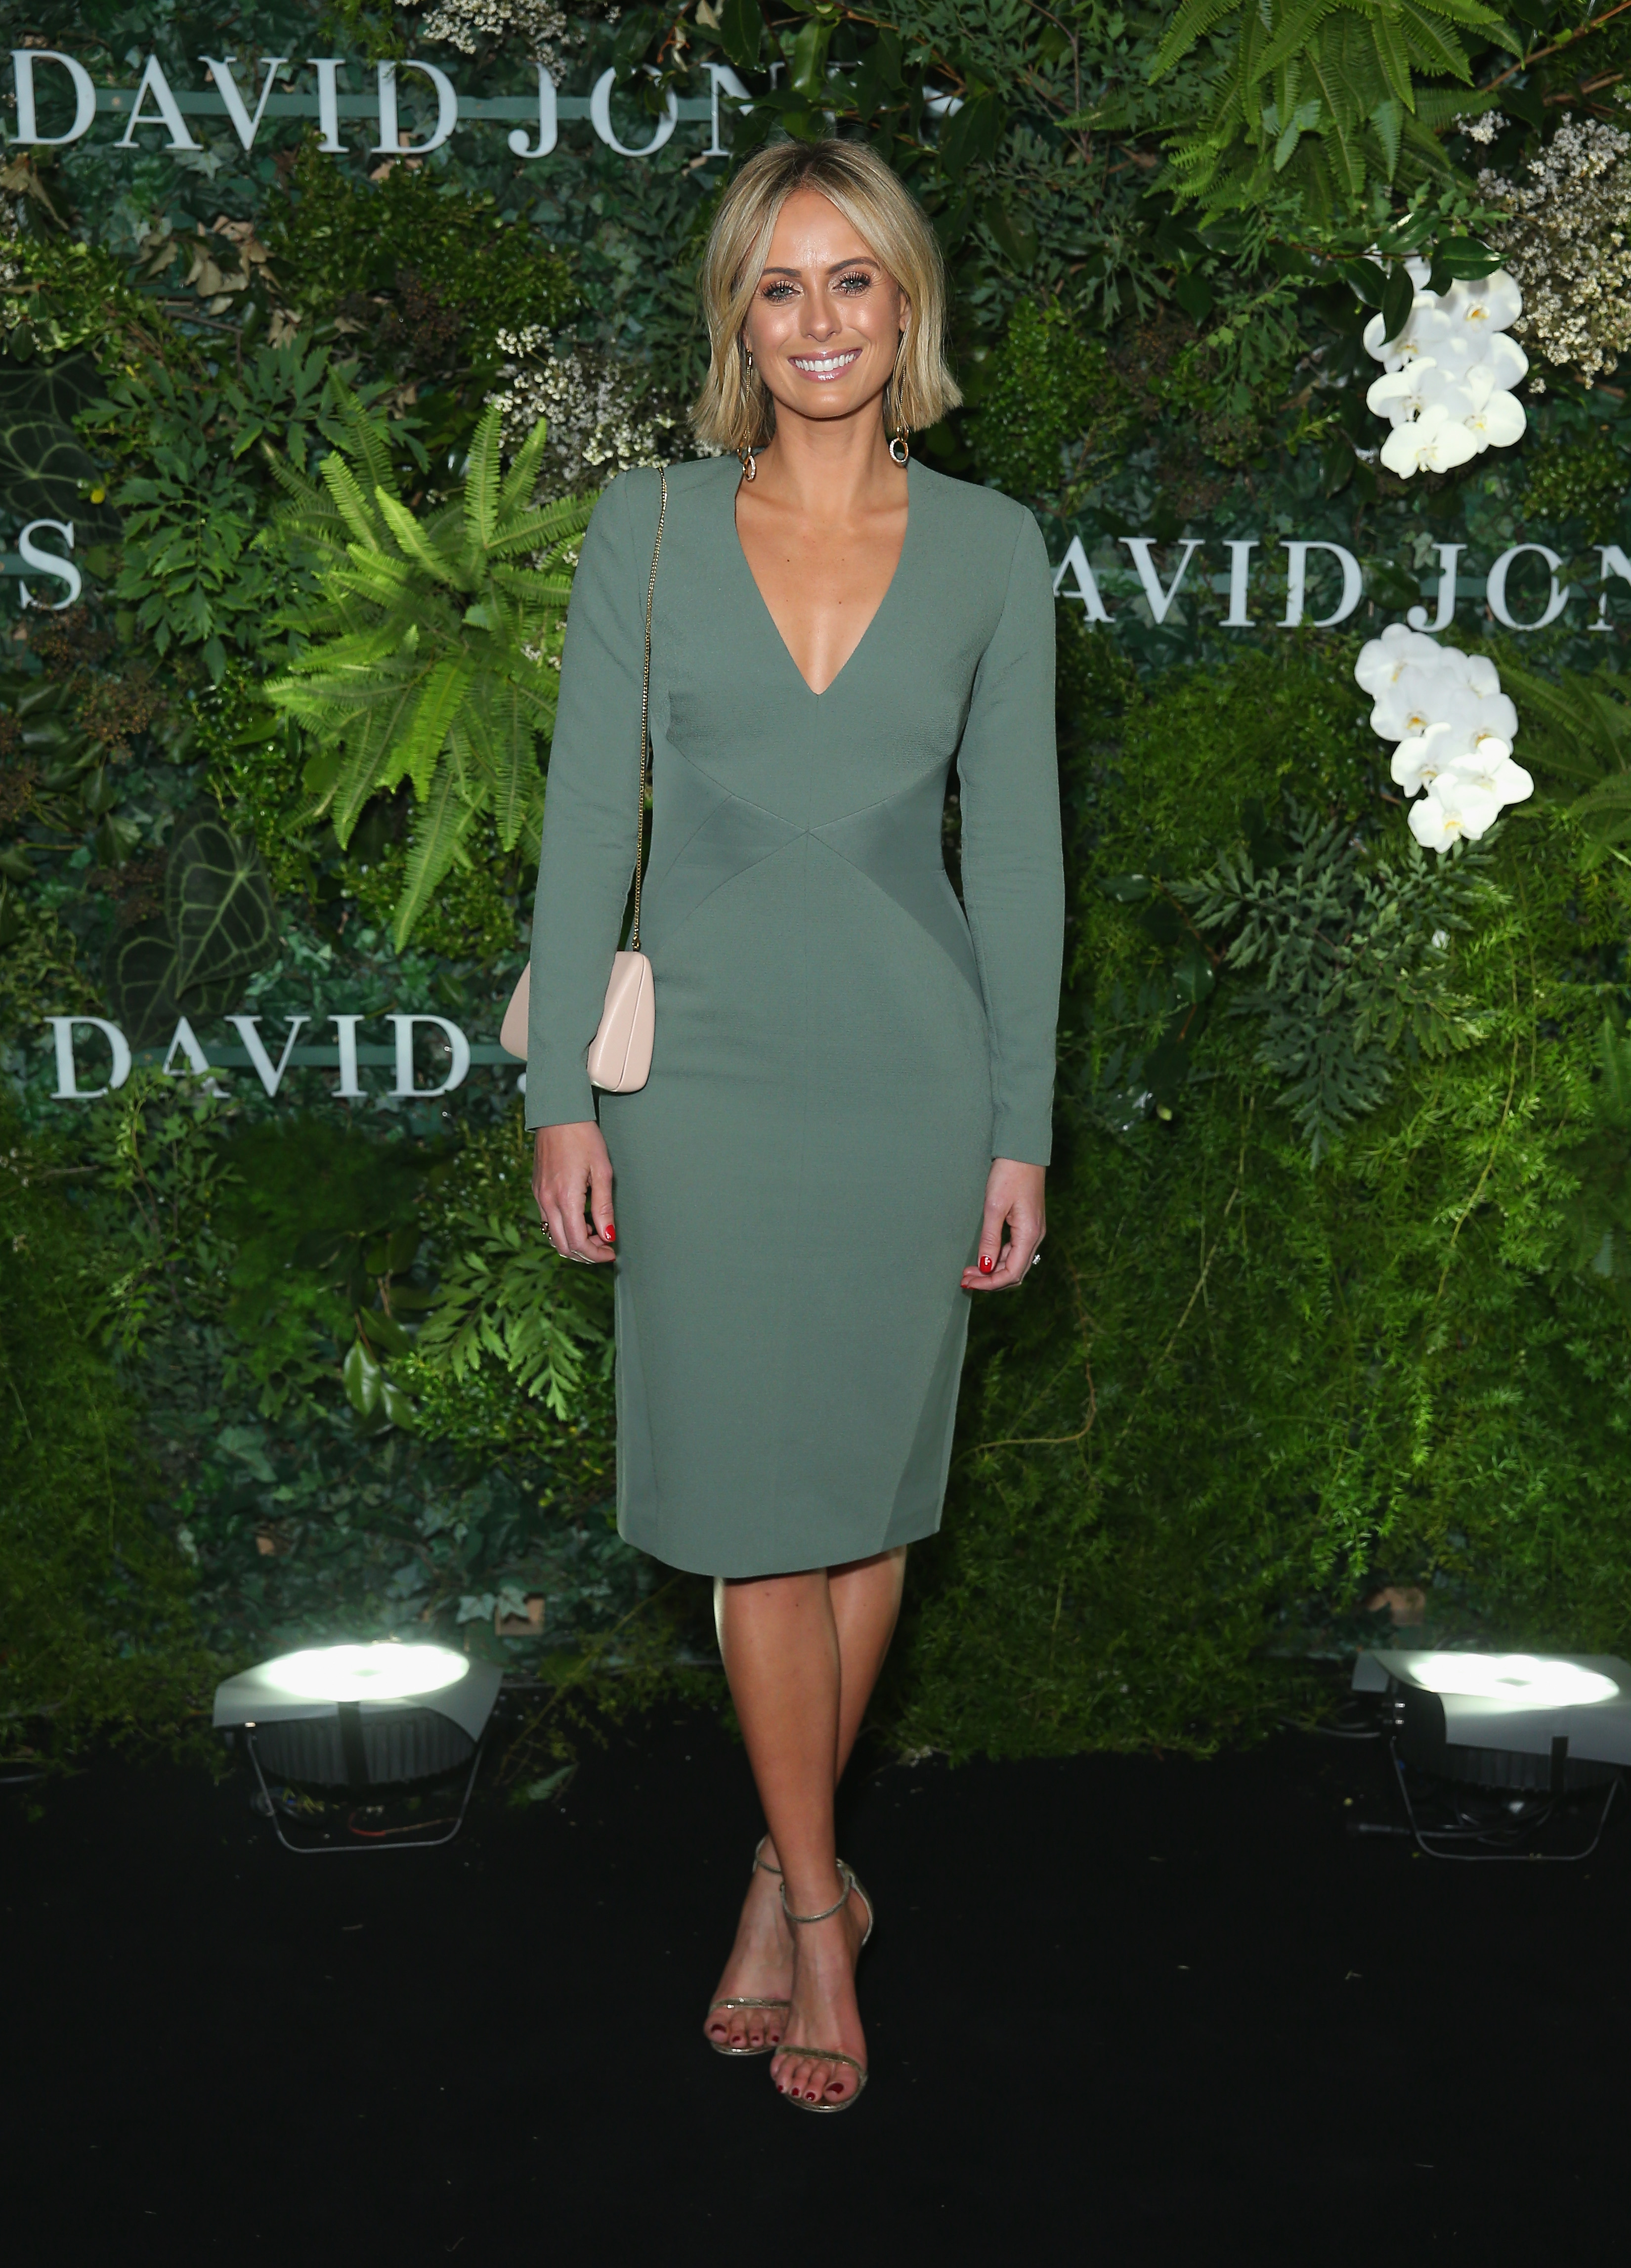 """<p>David Jones turned up the heat yet again with Victoria's Secret angels <a href=""""https://style.nine.com.au/2018/08/08/11/48/style-fashion-victorias-secret-david-jones-karolina-kurkova"""" target=""""_blank"""" title=""""Karolína Kurková"""">Karolína Kurková</a> and Victoria Lee and Gigi and Bella's little brother, <a href=""""https://style.nine.com.au/2018/08/08/08/42/style-fashion-david-jones-sydney-australia-anward-hadid"""" target=""""_blank"""" title=""""Anwar Hadid"""">Anwar Hadid</a>, leading the way at the David Jones spring/summer 2018 collection launch.</p> <p>Australia's style setsuch as <a href=""""https://style.nine.com.au/2018/08/03/09/21/tuscany-wedding-lindy-klim"""" target=""""_blank"""" title=""""Lindy Klim"""">Lindy Klim</a>, Kate Waterhouse and Jasmine Yarbrough were treated to a runway extravaganza with the best of Australian designers including, Manning Cartell, Zimmermann, Carla Zampatti, Viktoria & Woods and more.</p> <p>Colourful, floaty and feminine styles and sophisticated, structured silhouettes were the stars of the show.</p> <p>Click through to see all the A-listers who showed up for fashion's big night.</p> <p></p>"""